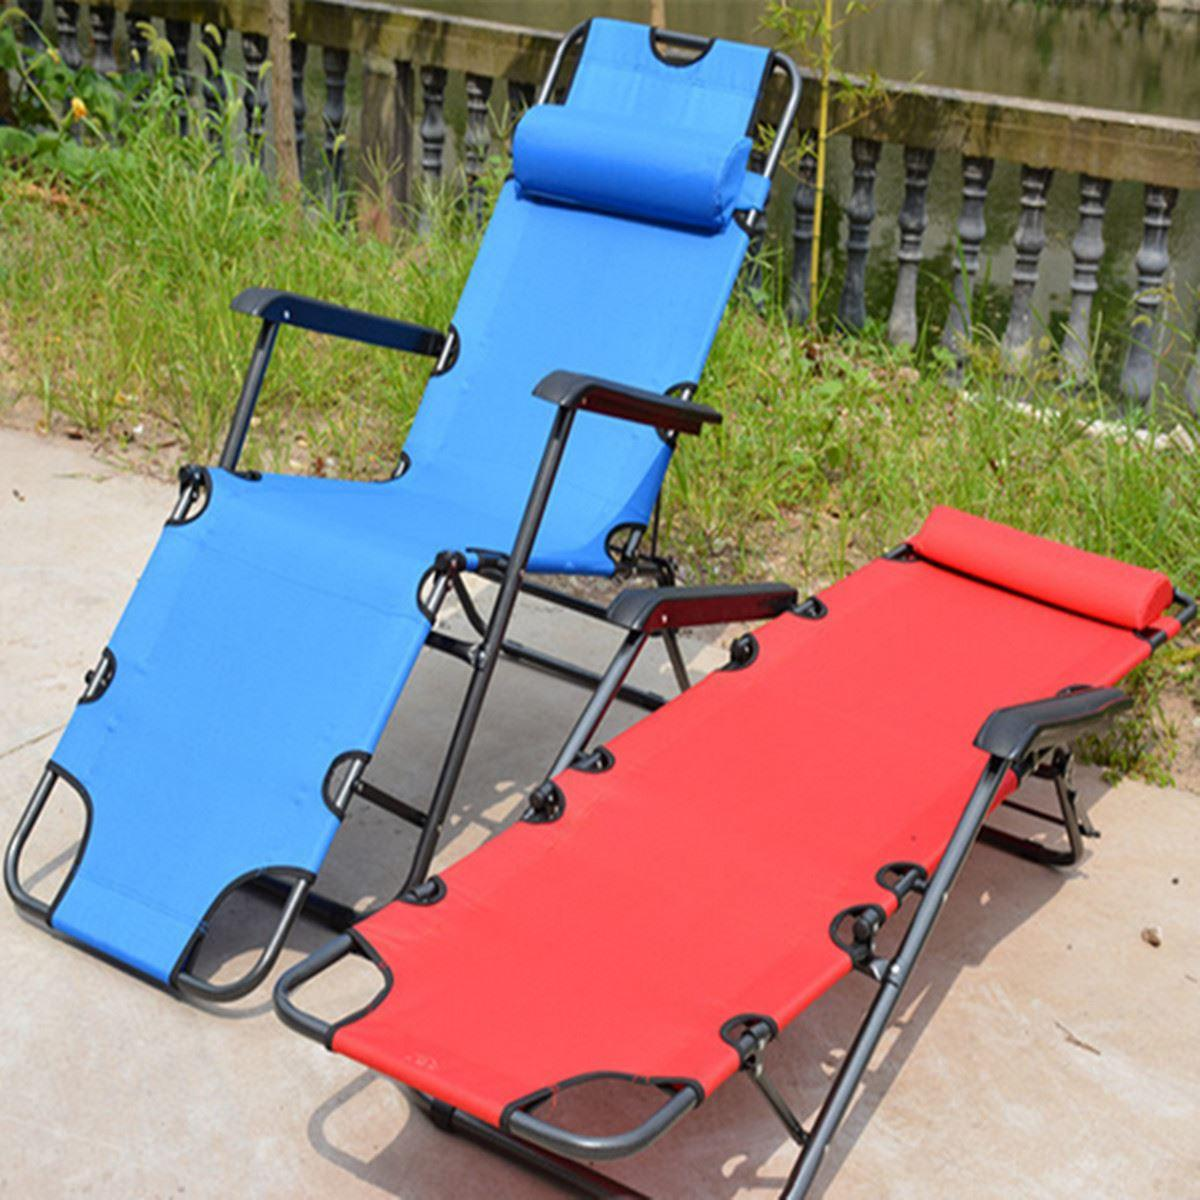 chair garden lounge chaise pool umbrella design with home outdoor chairs kids